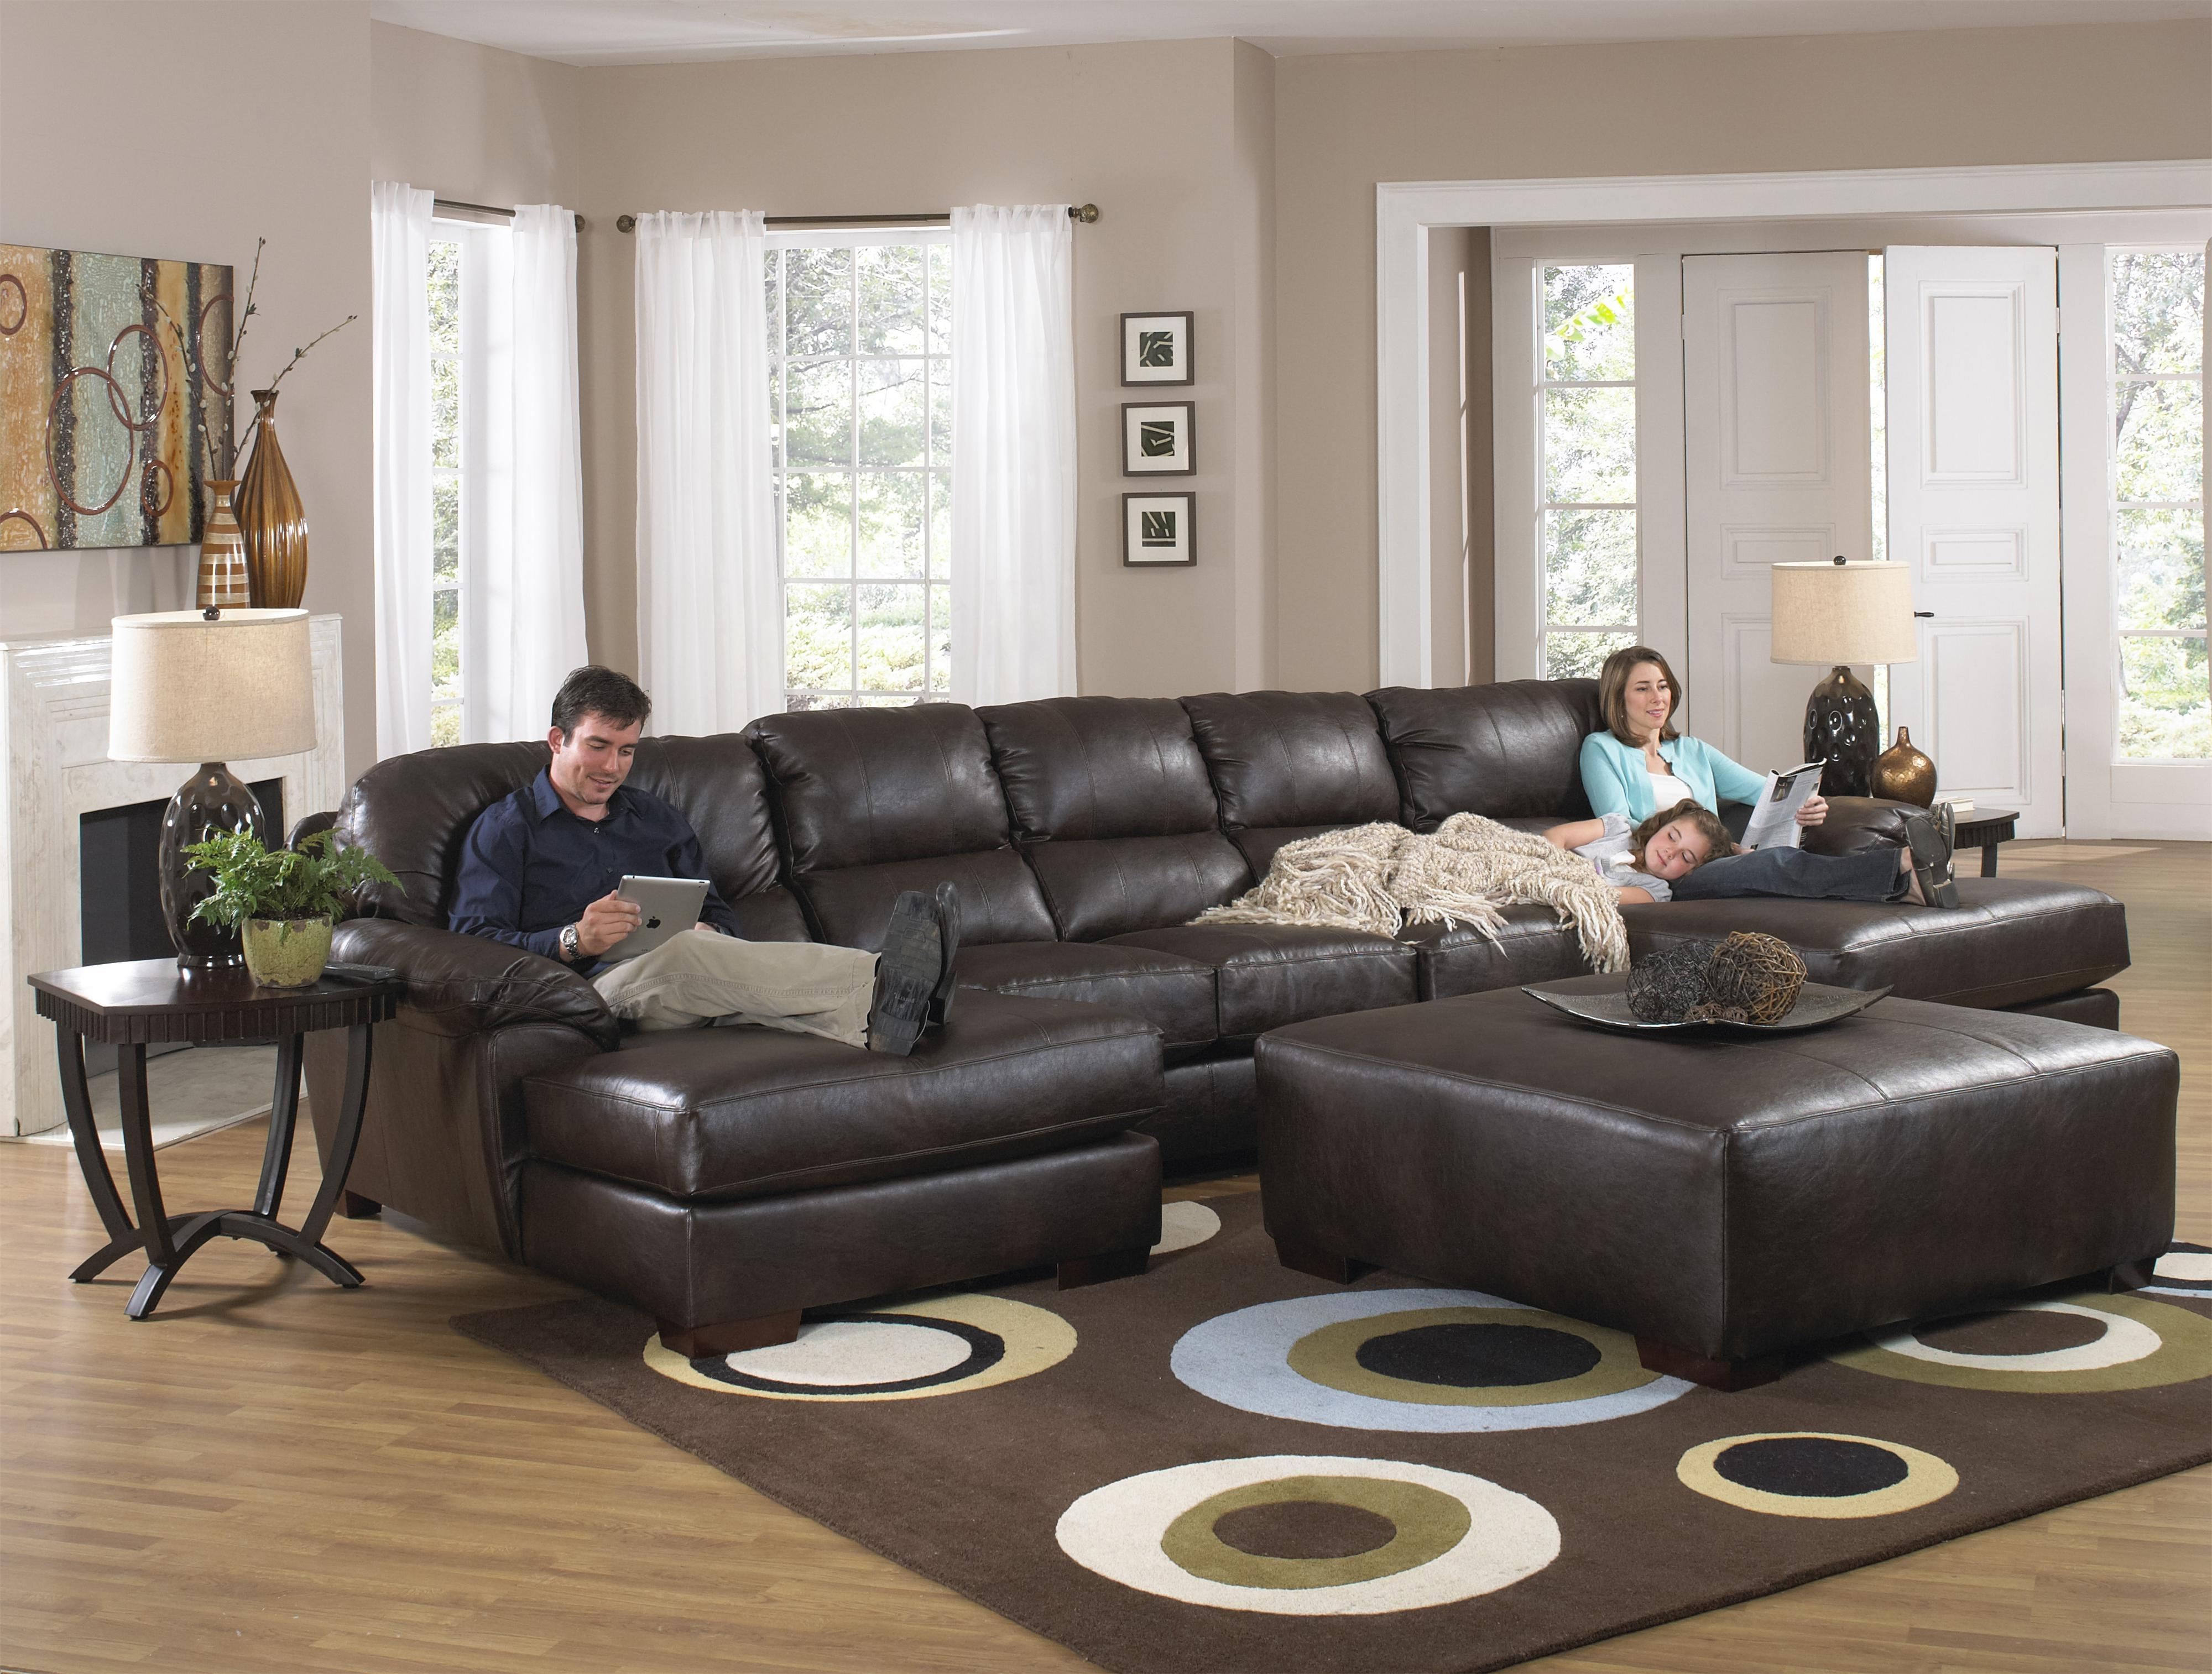 Small Sectional Sofas With Chaise And Ottoman Inside Well Liked Sofa : Beautiful Large Sectional Sofa With Chaise L Shaped Cream (Gallery 4 of 20)